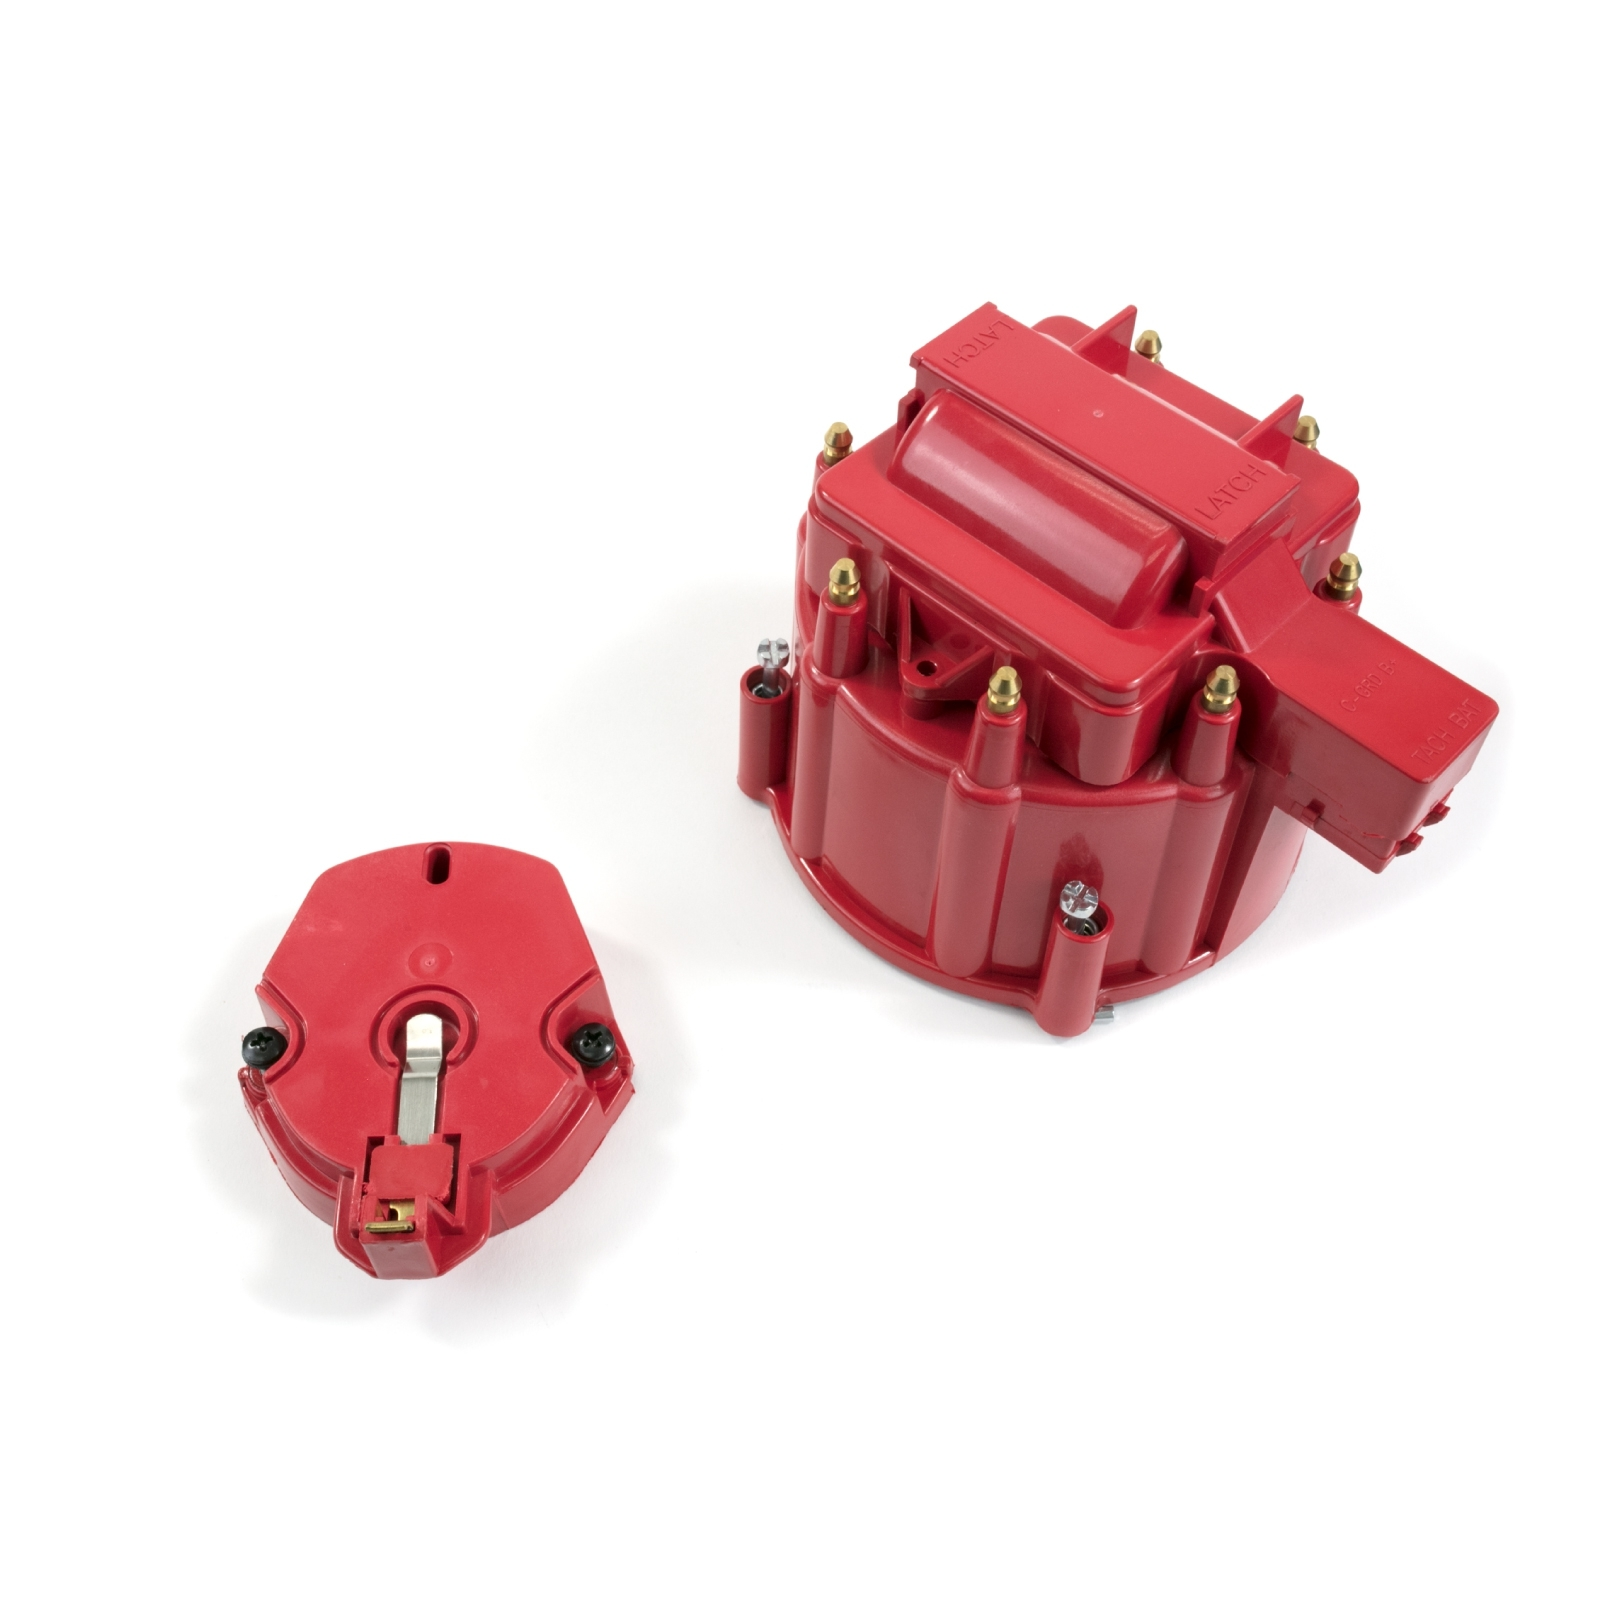 A-Team Performance CR8R HEI OEM Distributor Cap, Rotor and, Coil Cover Kit Red